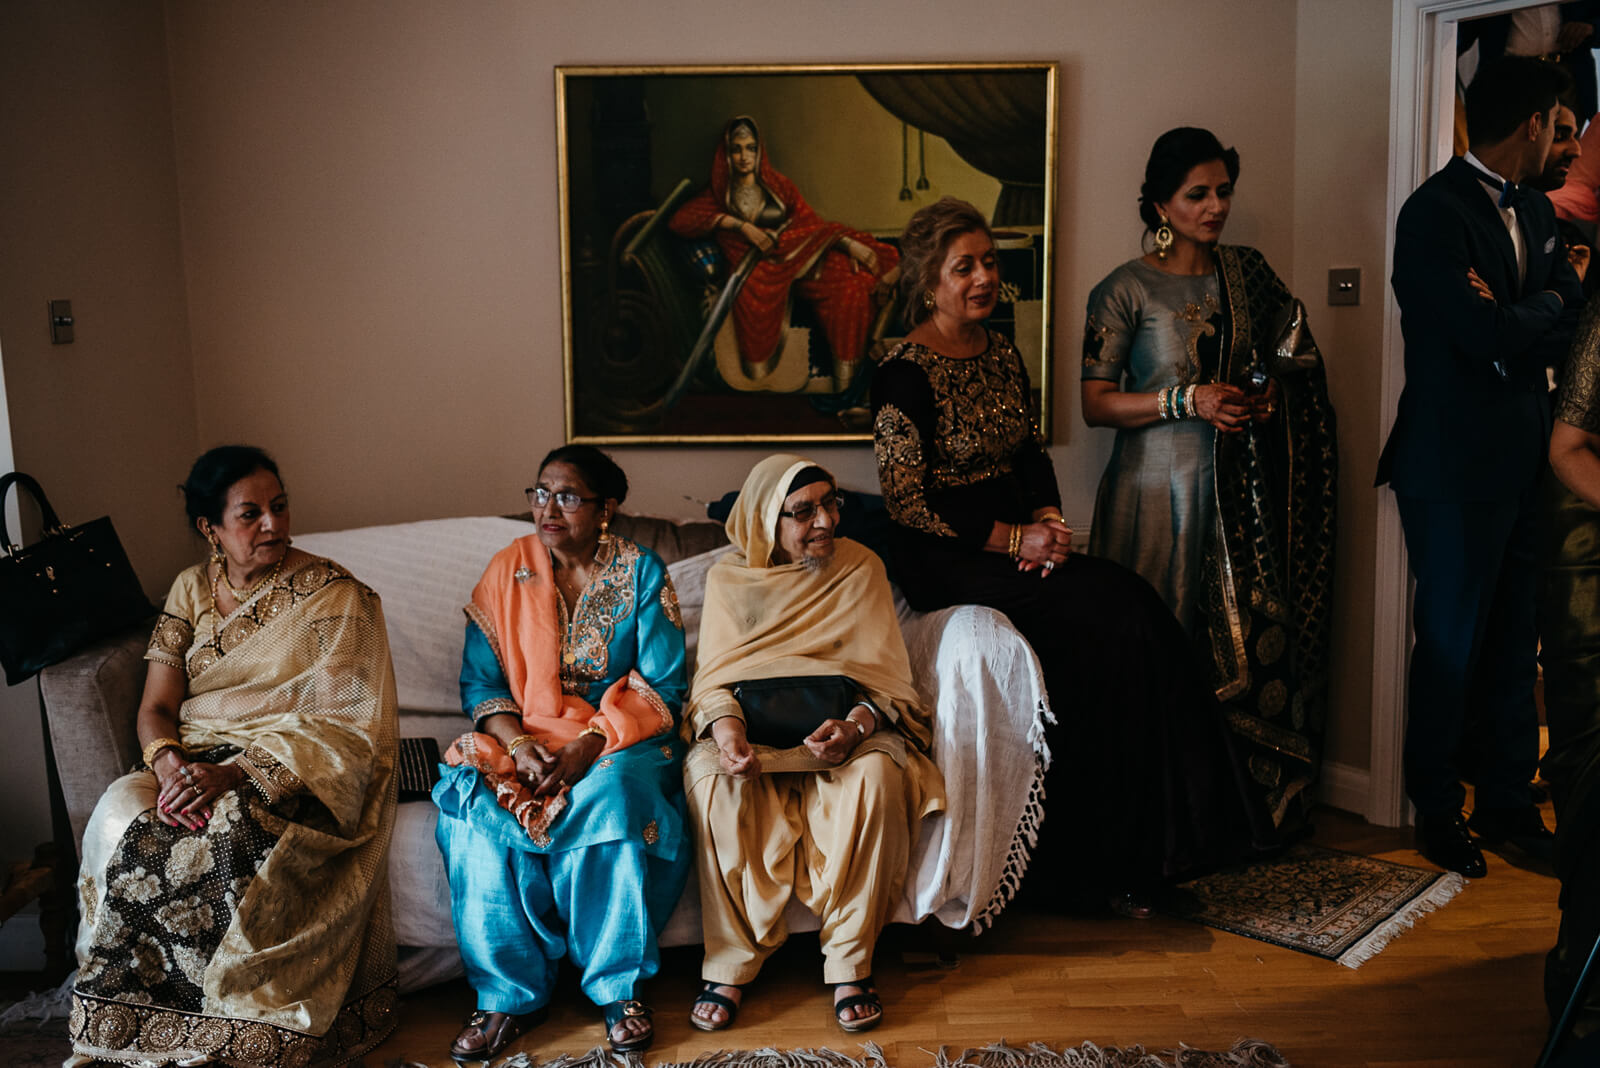 London grooms family in traditional indian dress await his arrival